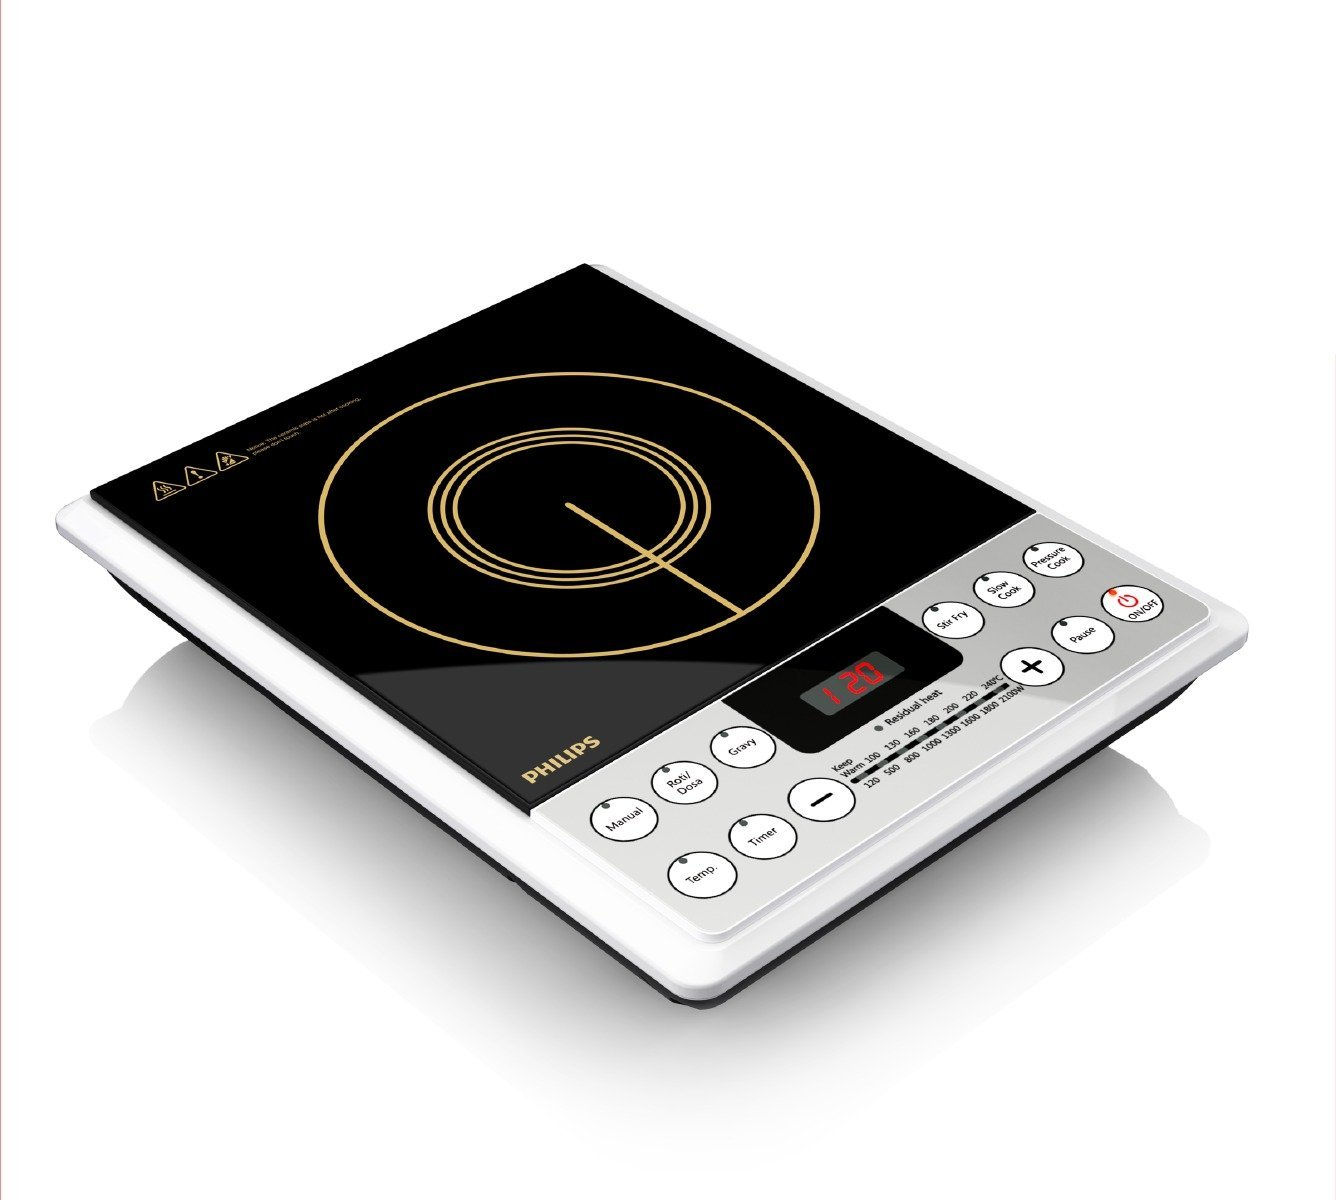 61R6ZSVGSJL._SL1336_ Philips Induction Cook Top HD4929 Rs. 2386 – Amazon